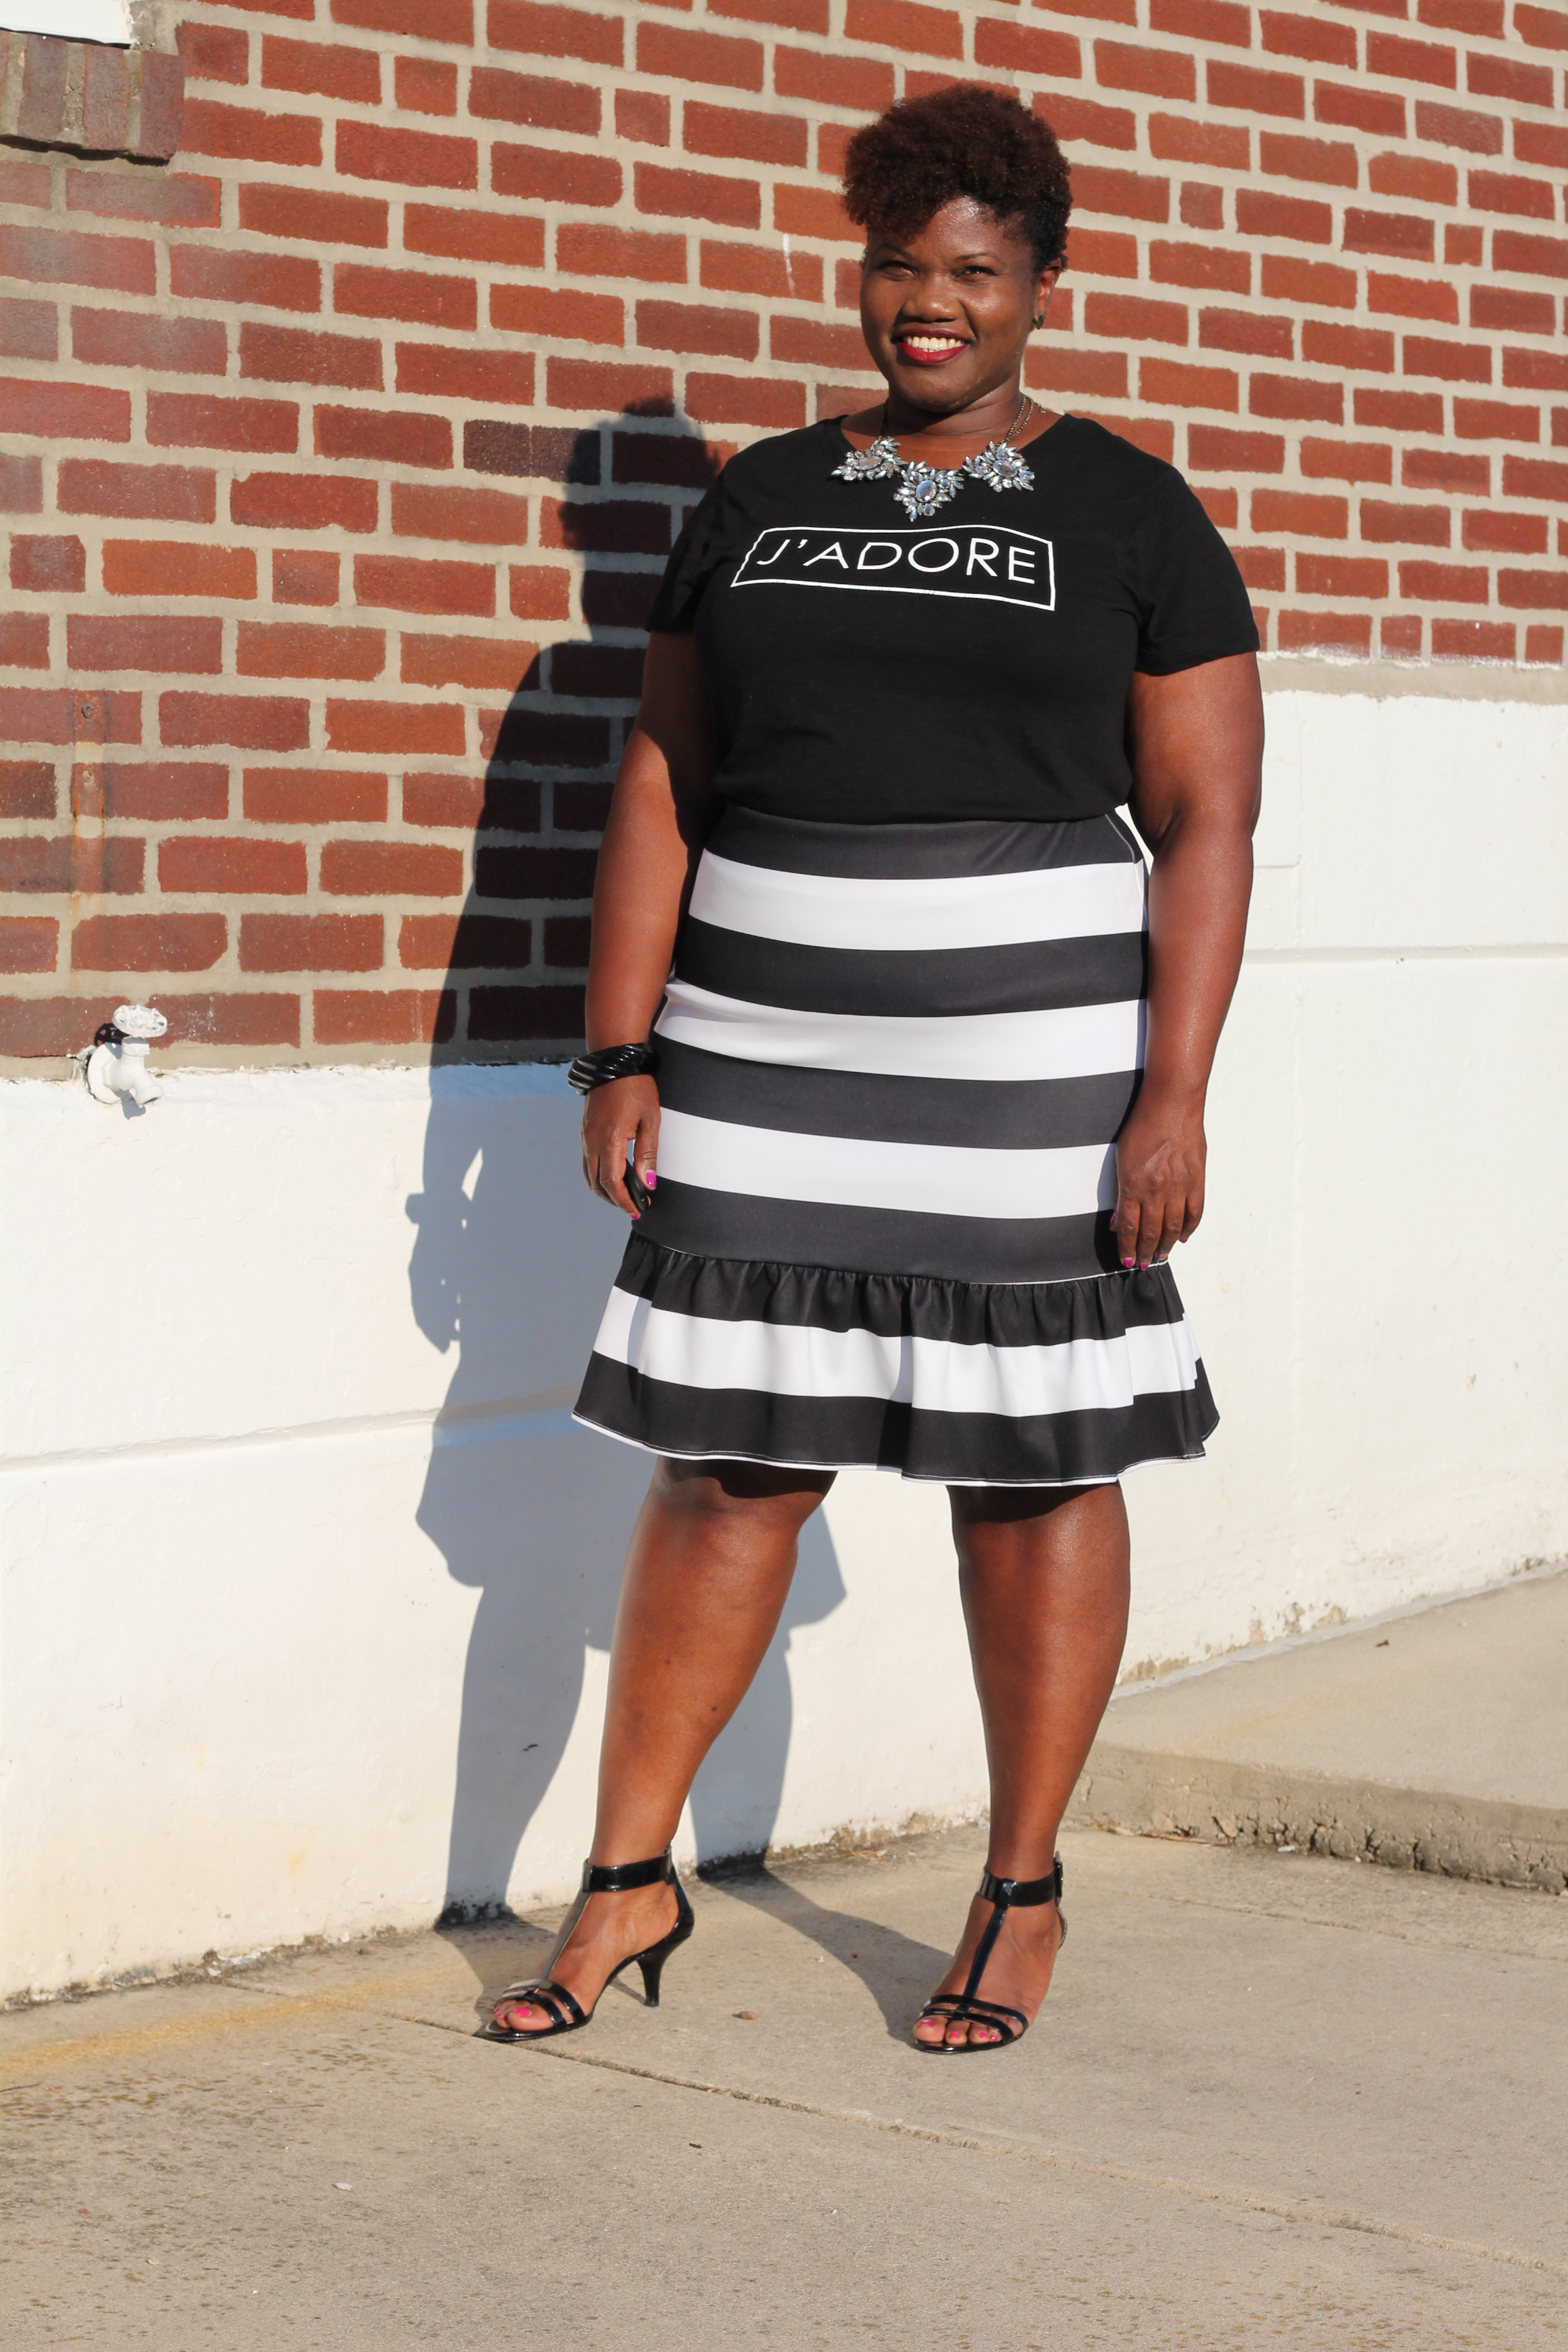 curvy women, curvy, curvy girls, striped skirts, eloquii, plus size fashion, plus size clothing, statement t shirts, old navy, plus size blogs, plus size bloggers, curvy blogs, curvy bloggers, black women blogs, black women style blogs, fat blogs, fat bloggers, fall trends, summer